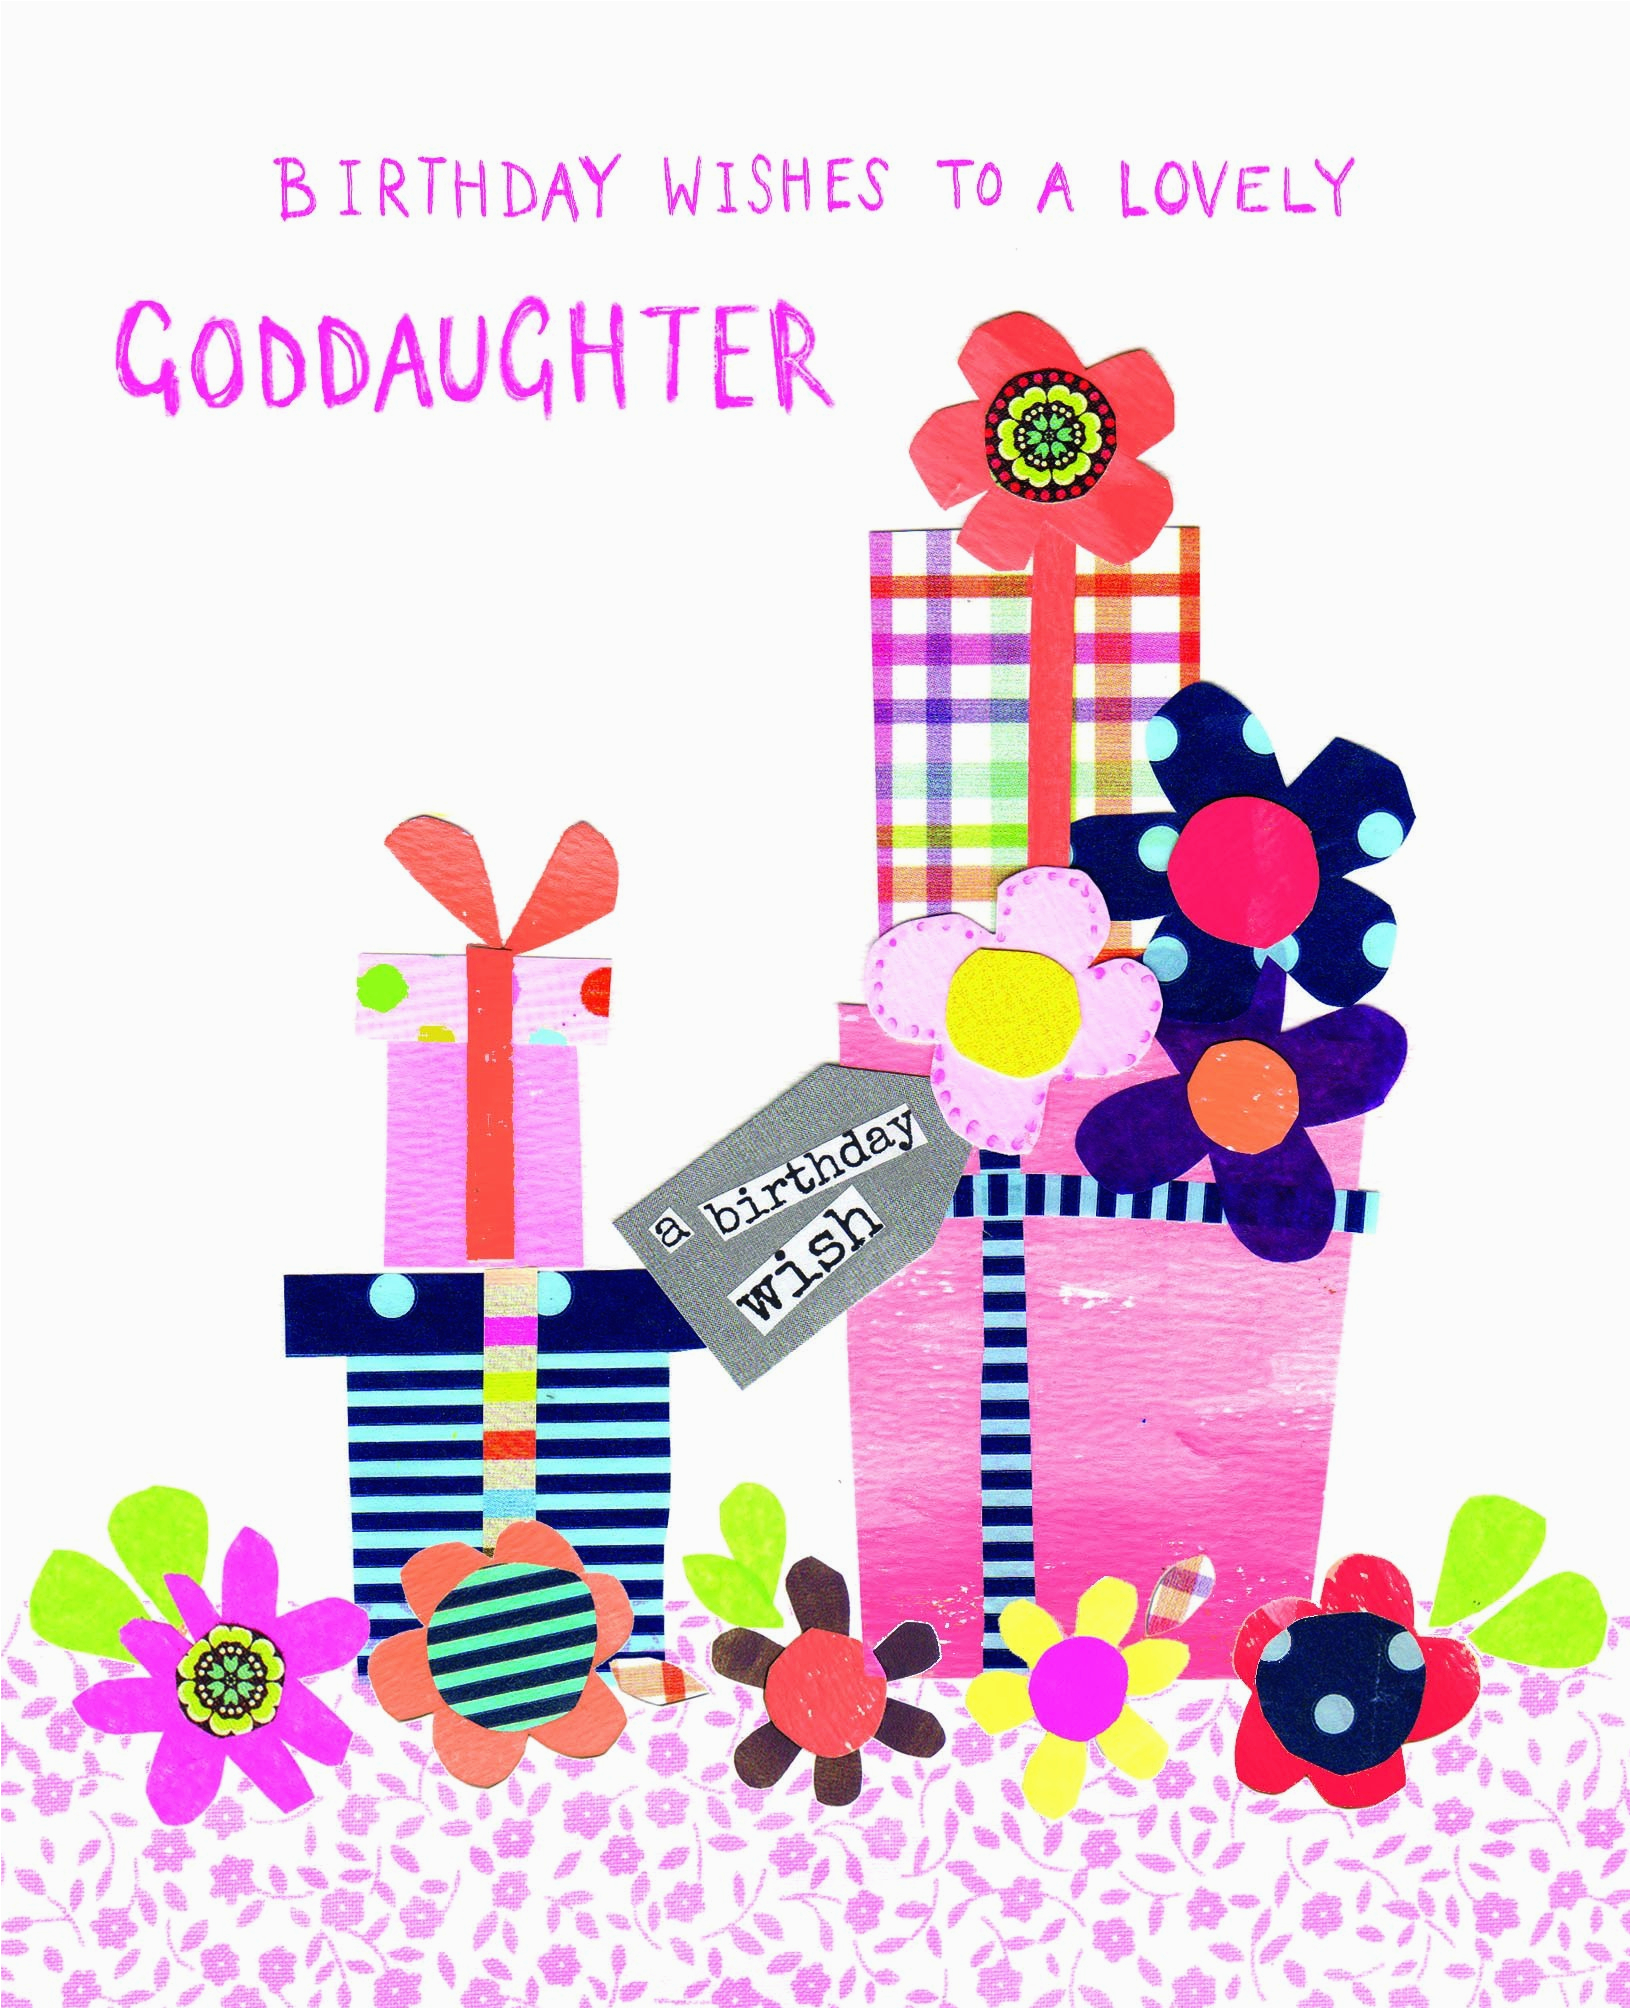 Goddaughter First Birthday Card A Goddaughter Birthday Card Goddaughter Relations